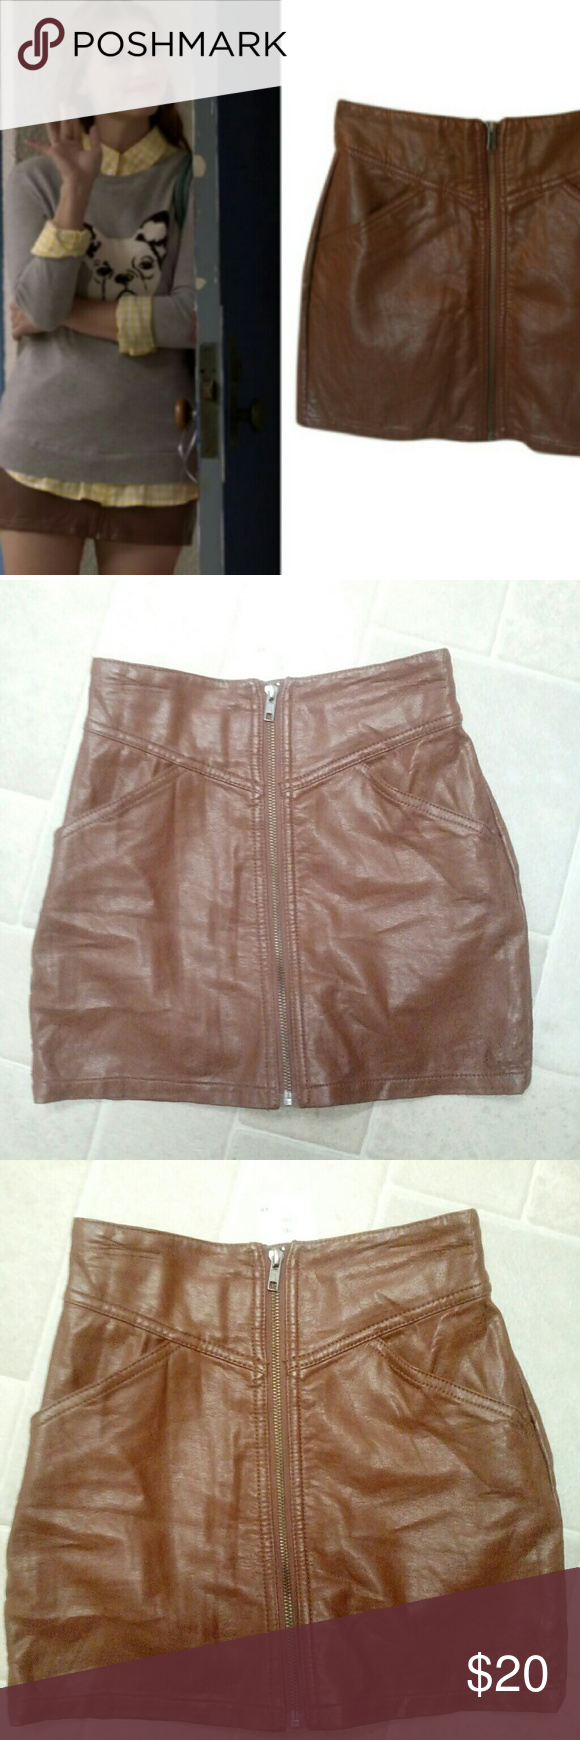 Lydia Martin H&M faux leather skirt ASO Teen Wolf The exact skirt Lydia Martin wears repeatedly in plenty of Teen Wolf episodes, including perhaps the most iconic Stydia episode featuring the red string in 3B. New with tags! H&M Skirts Mini